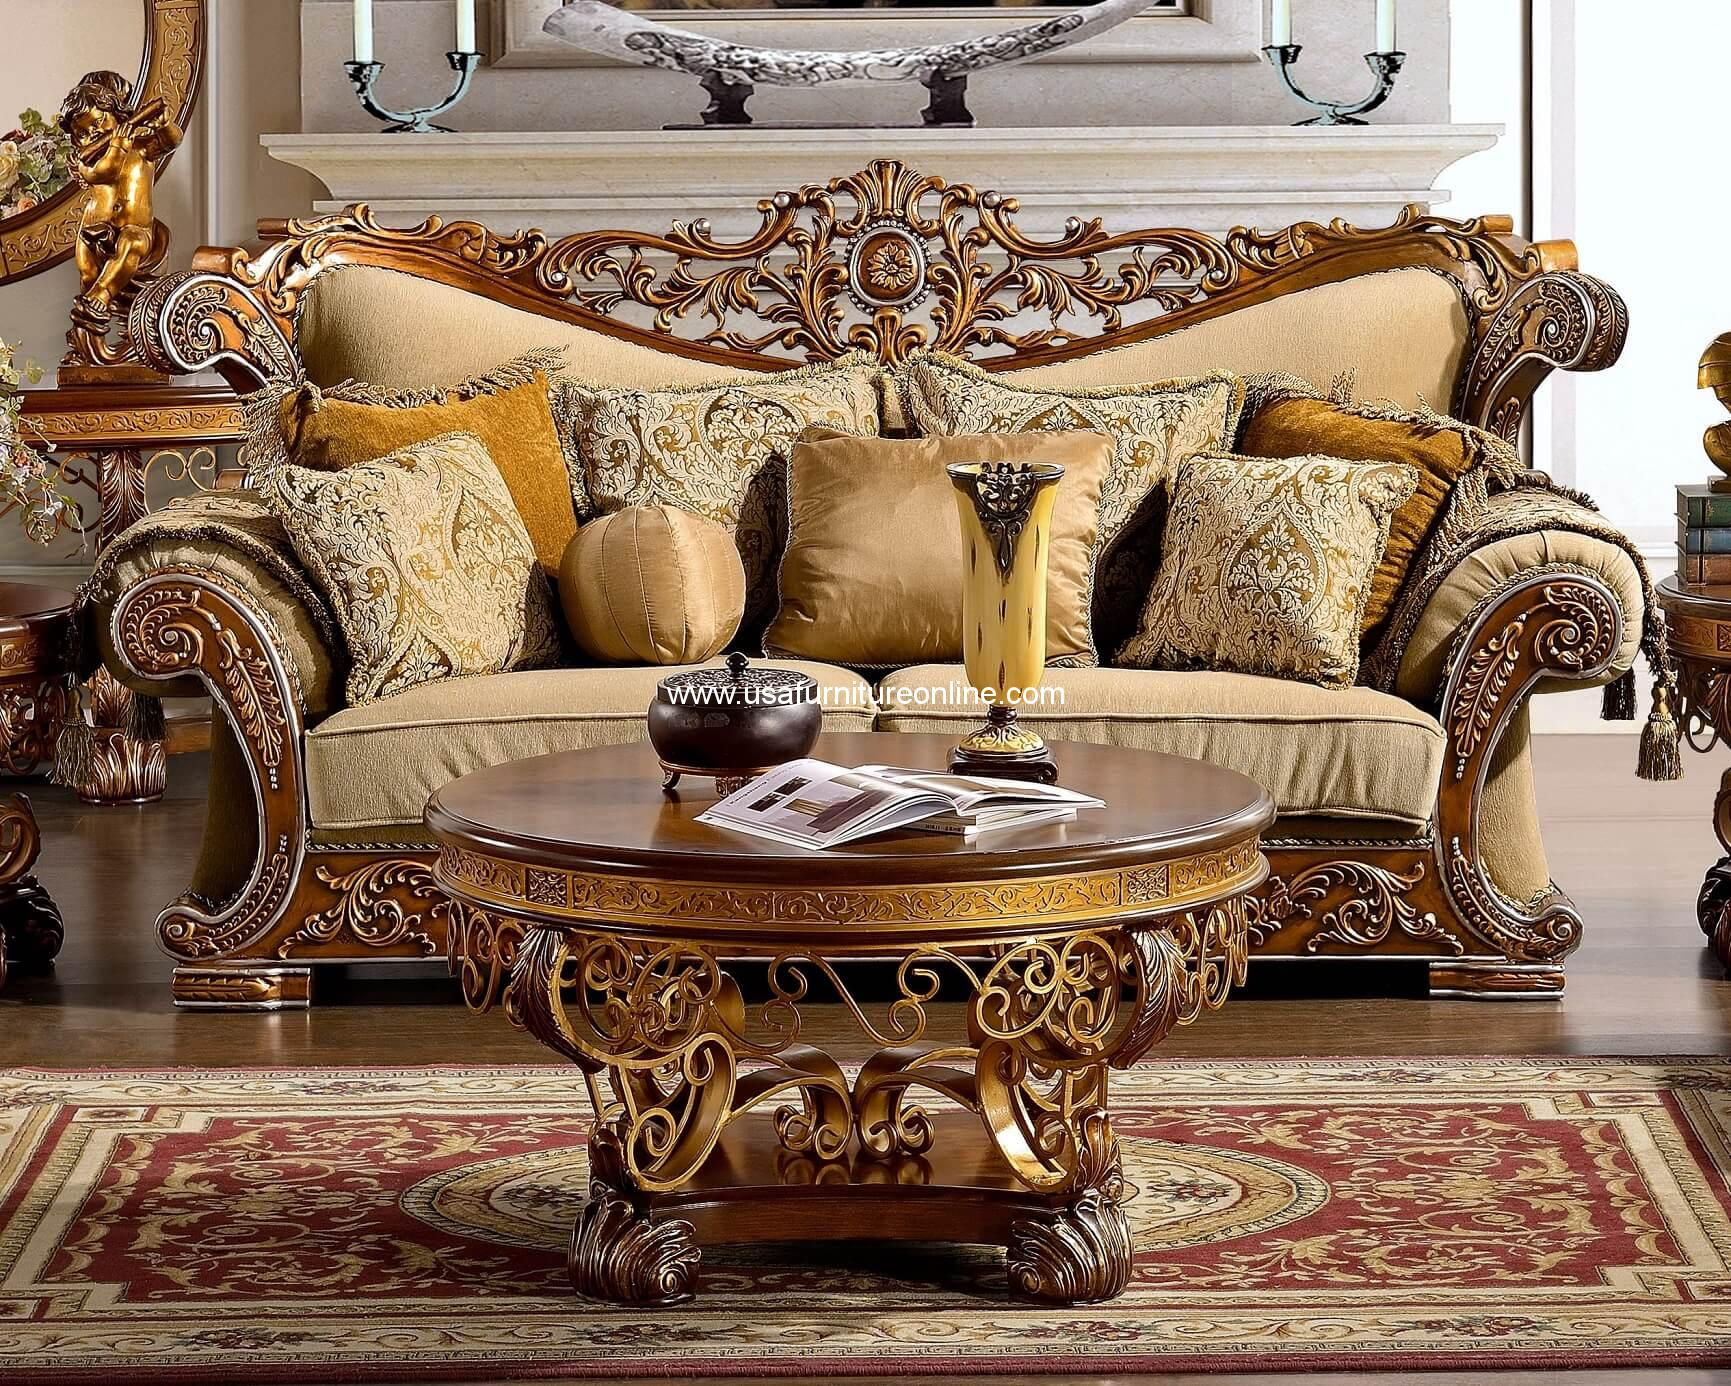 Merveilleux USA Furniture Online